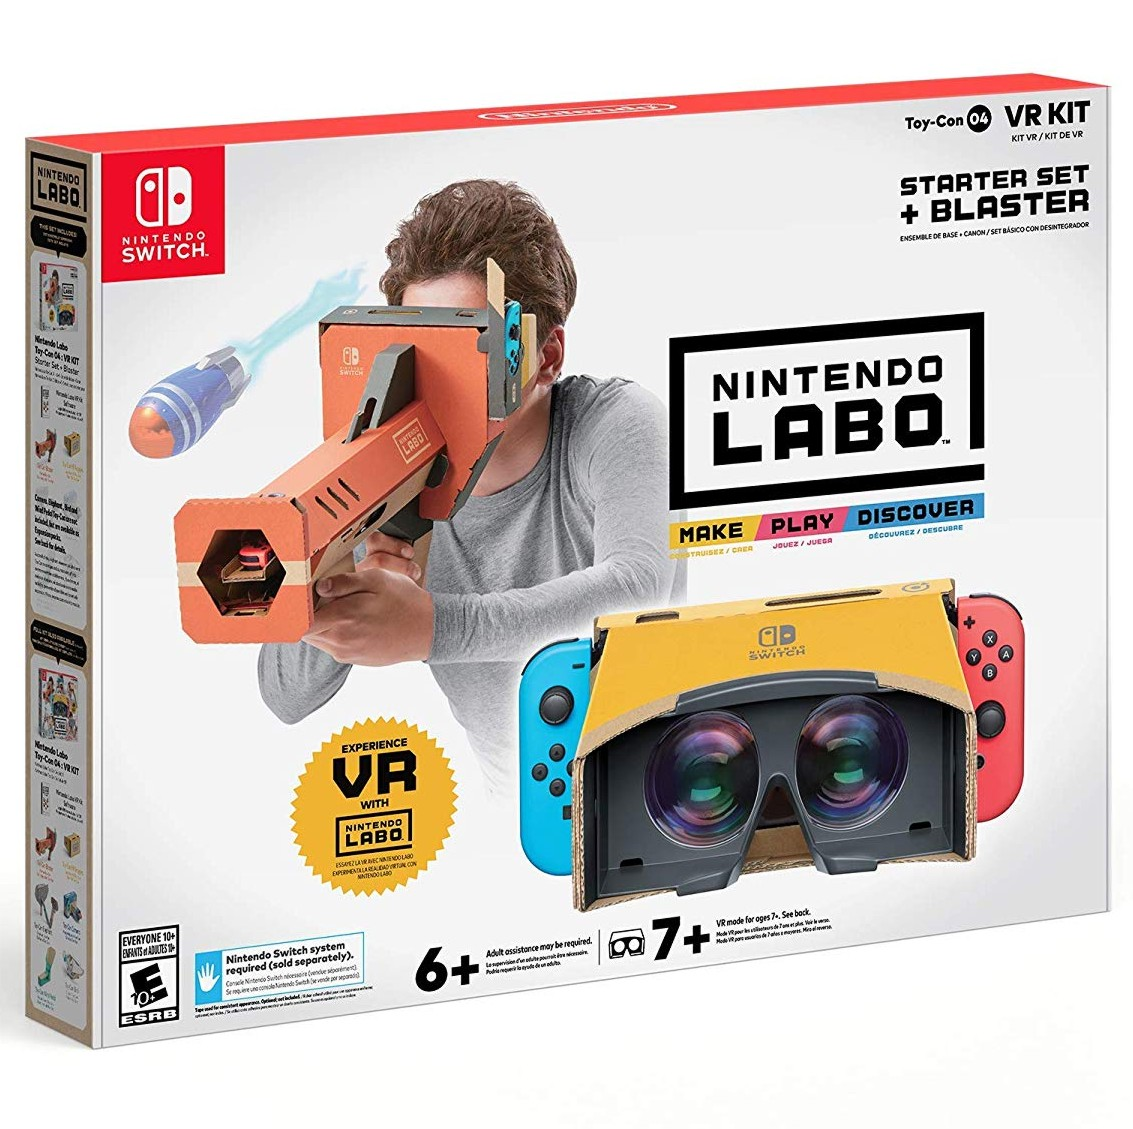 Nintendo Labo VR Kit - Starter Set+Blaster - Switch